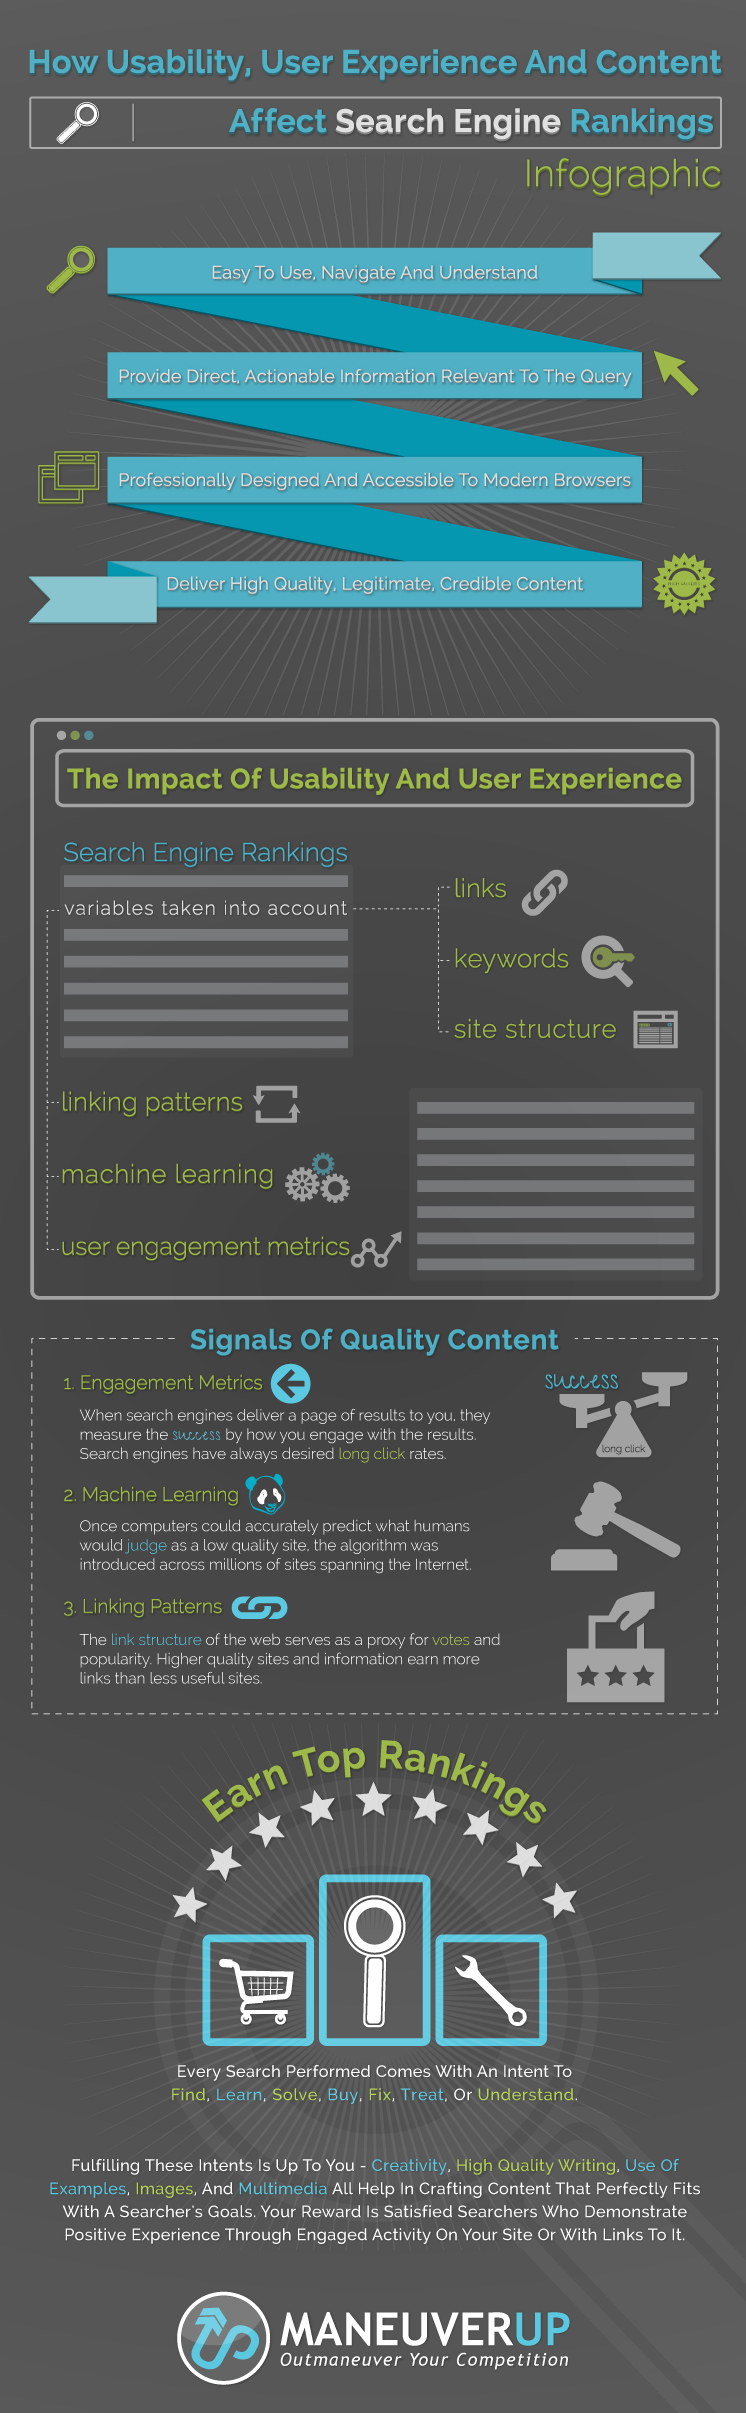 How Usability User Experience And Content Affect Search Engine Rankings Infographic